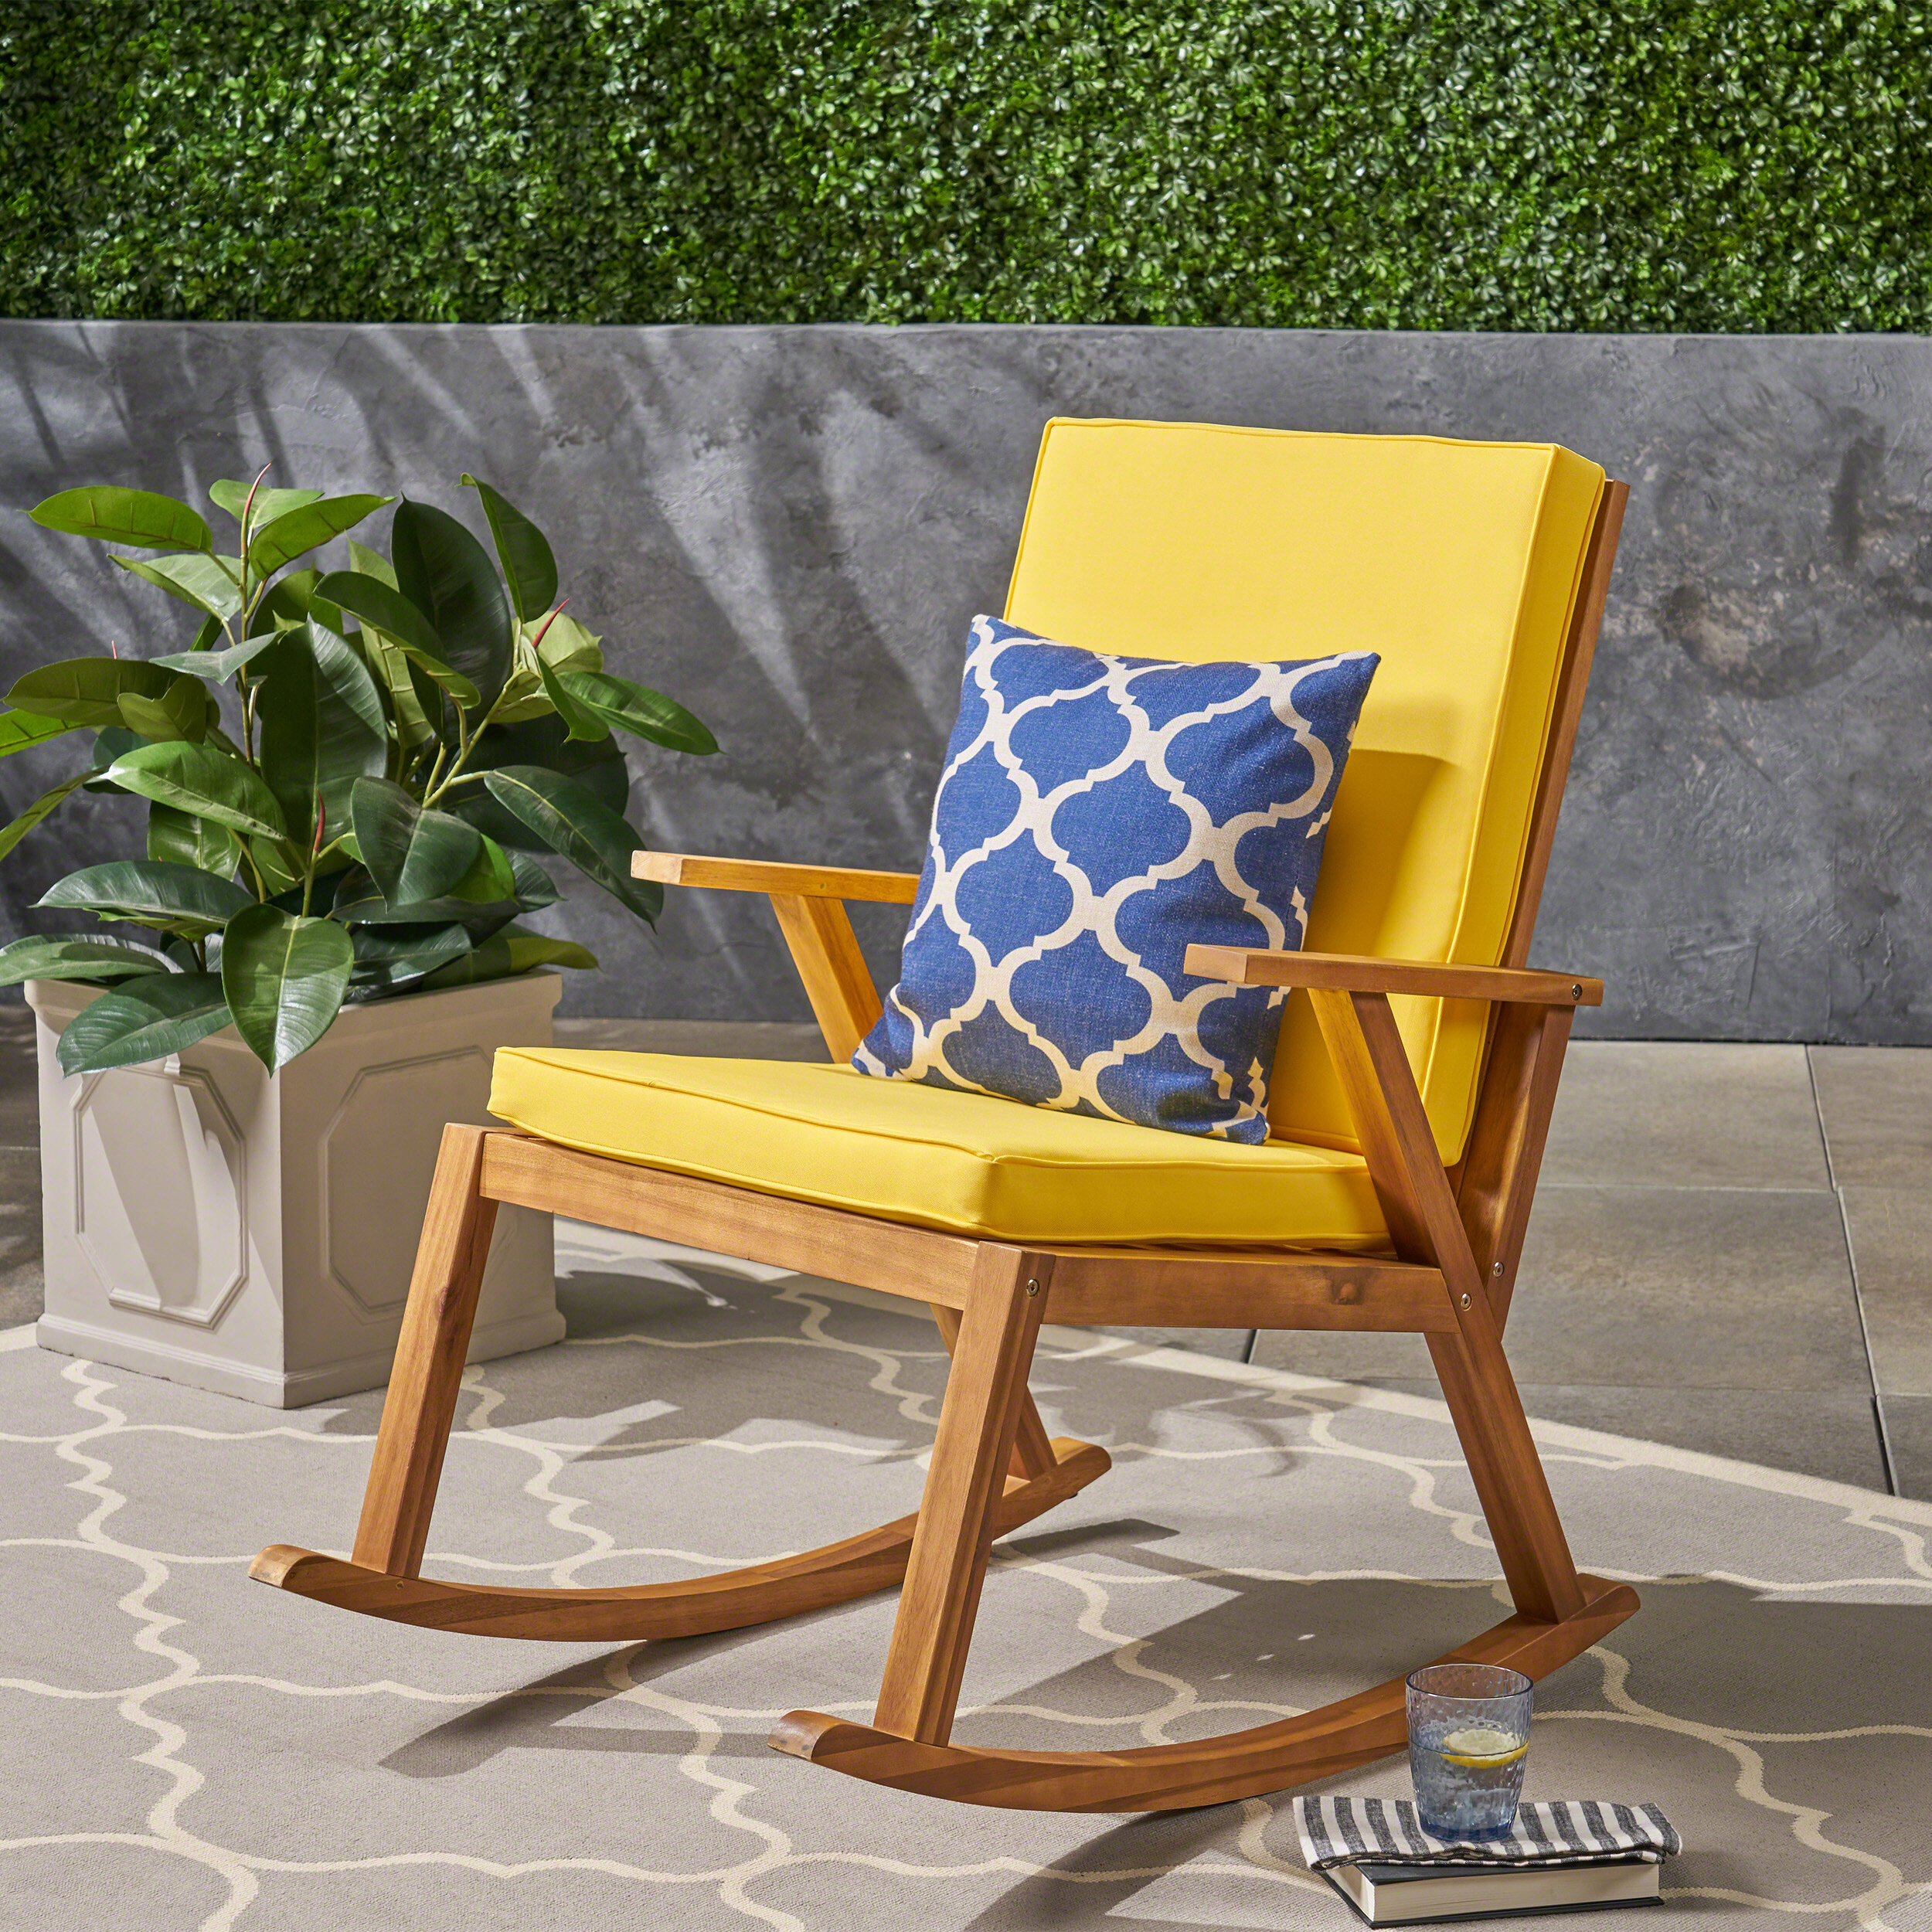 Charmant Larracey Outdoor Rocking Chair With Cushions